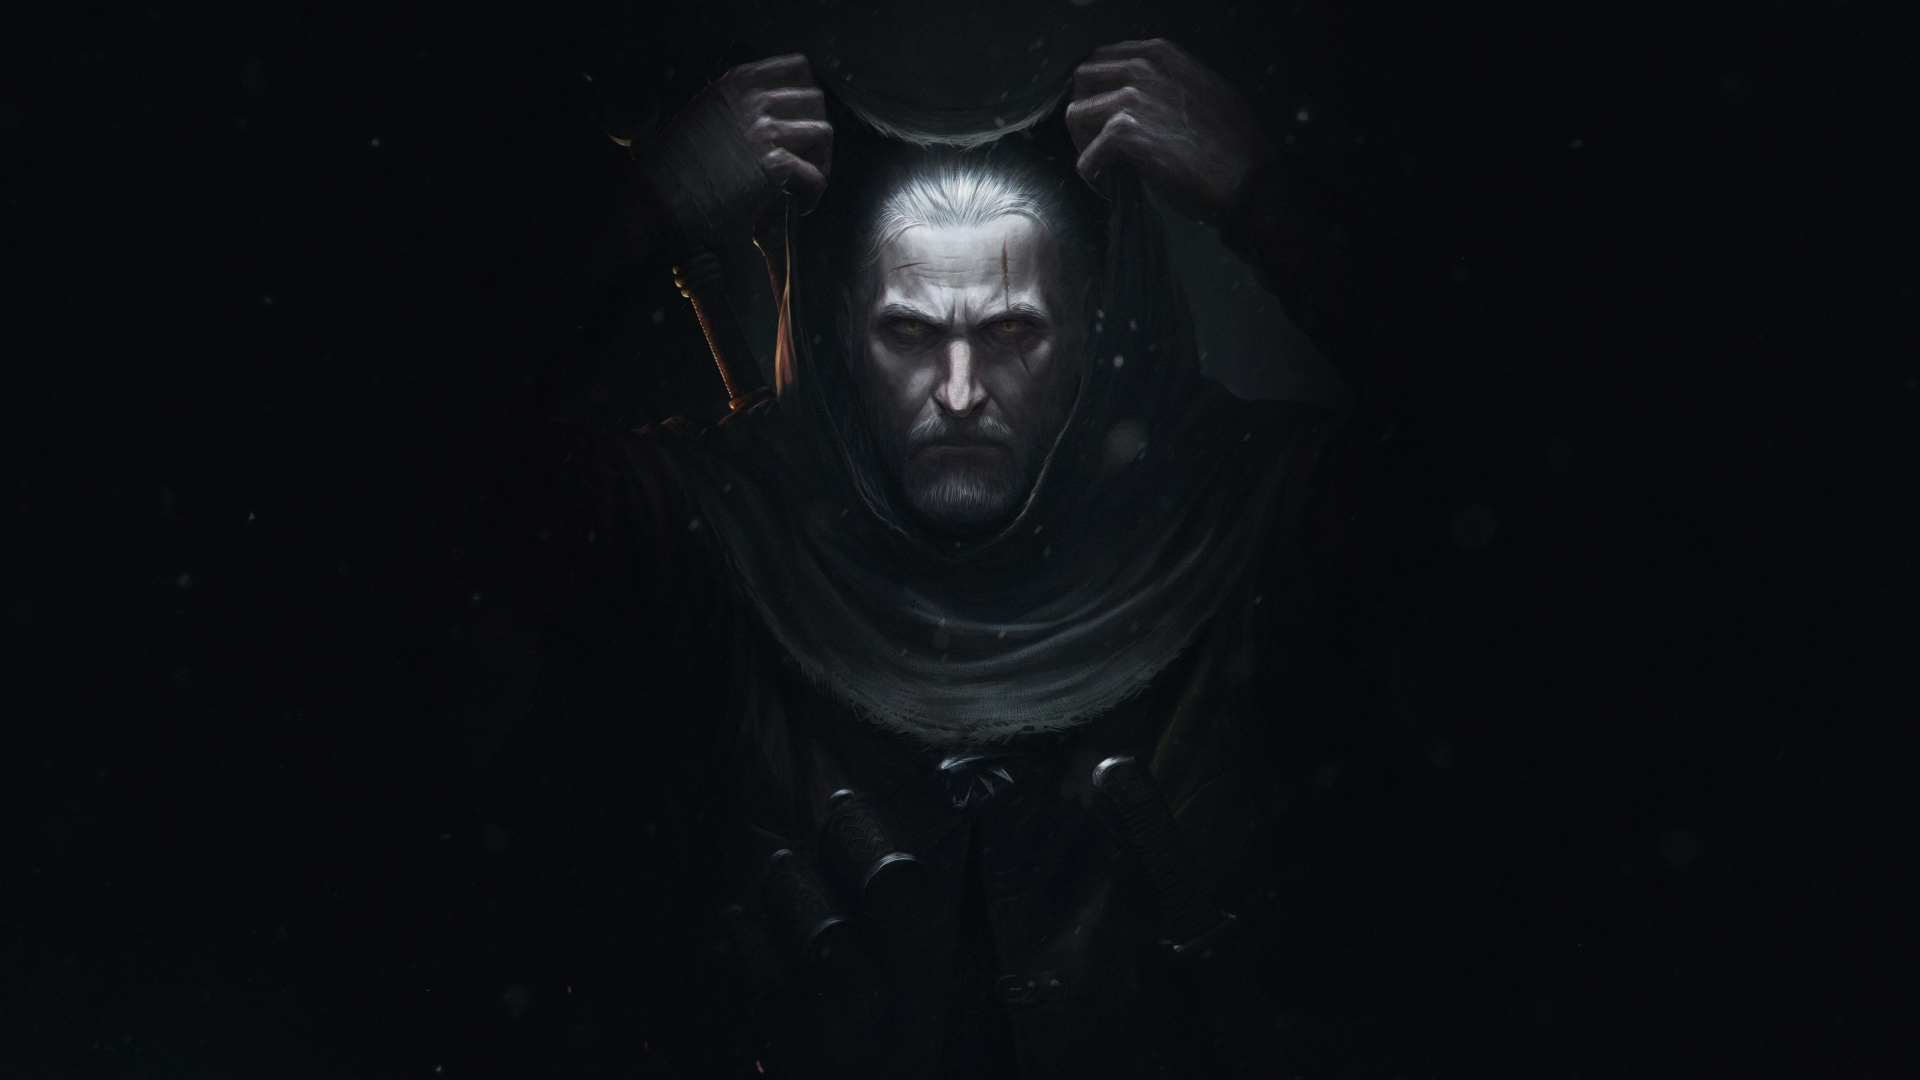 1920x1080 The Witcher 3 Wild Hunt Poster 1080p Laptop Full Hd